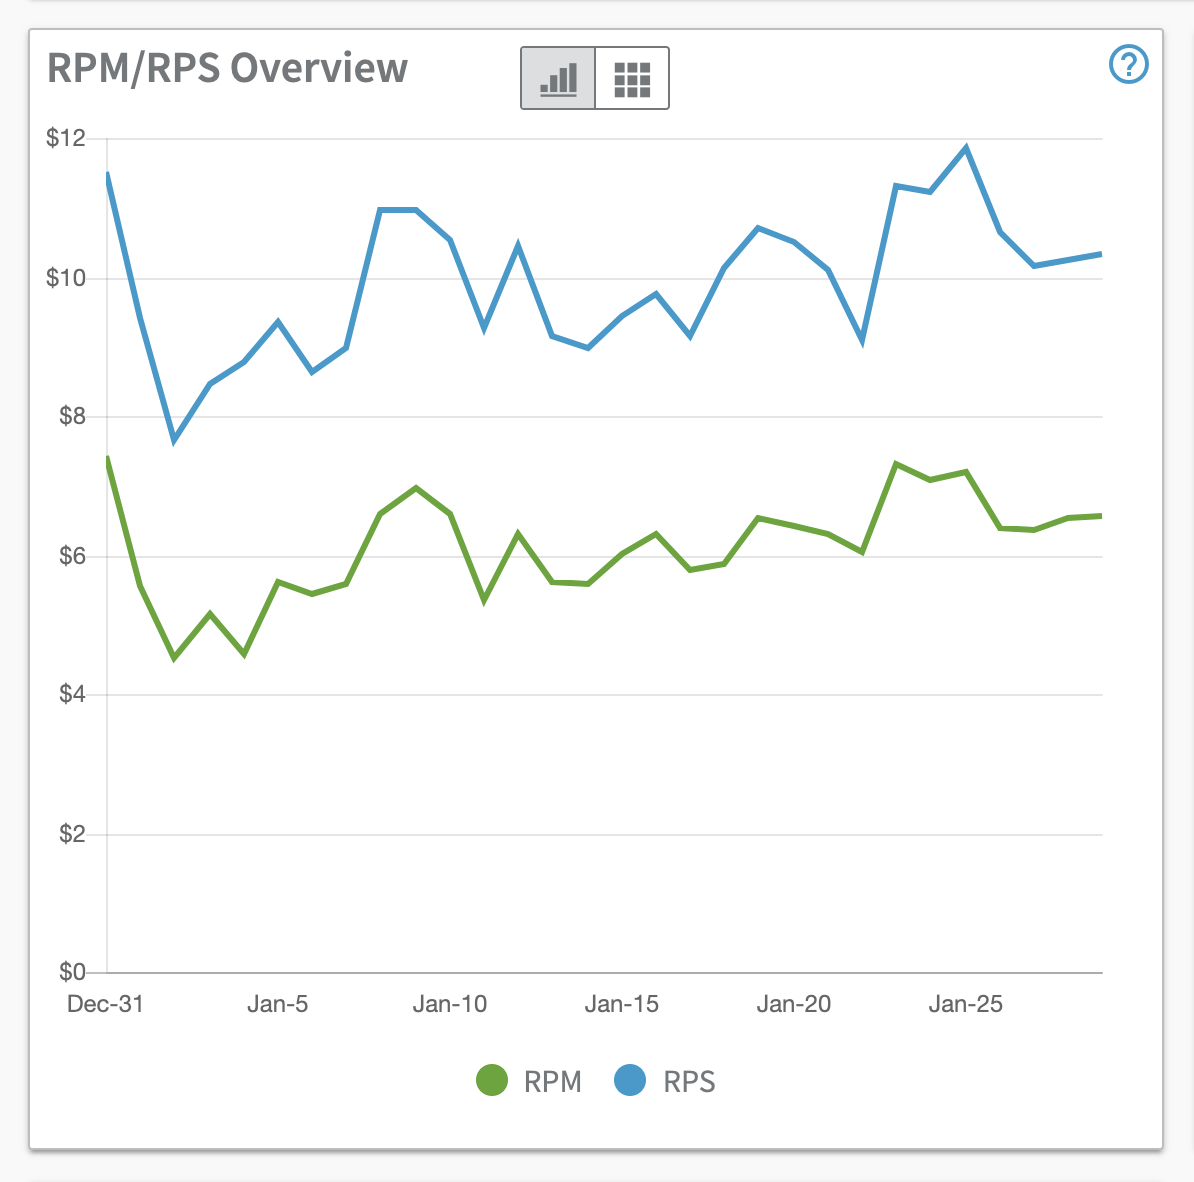 rpm_rps_overview.png